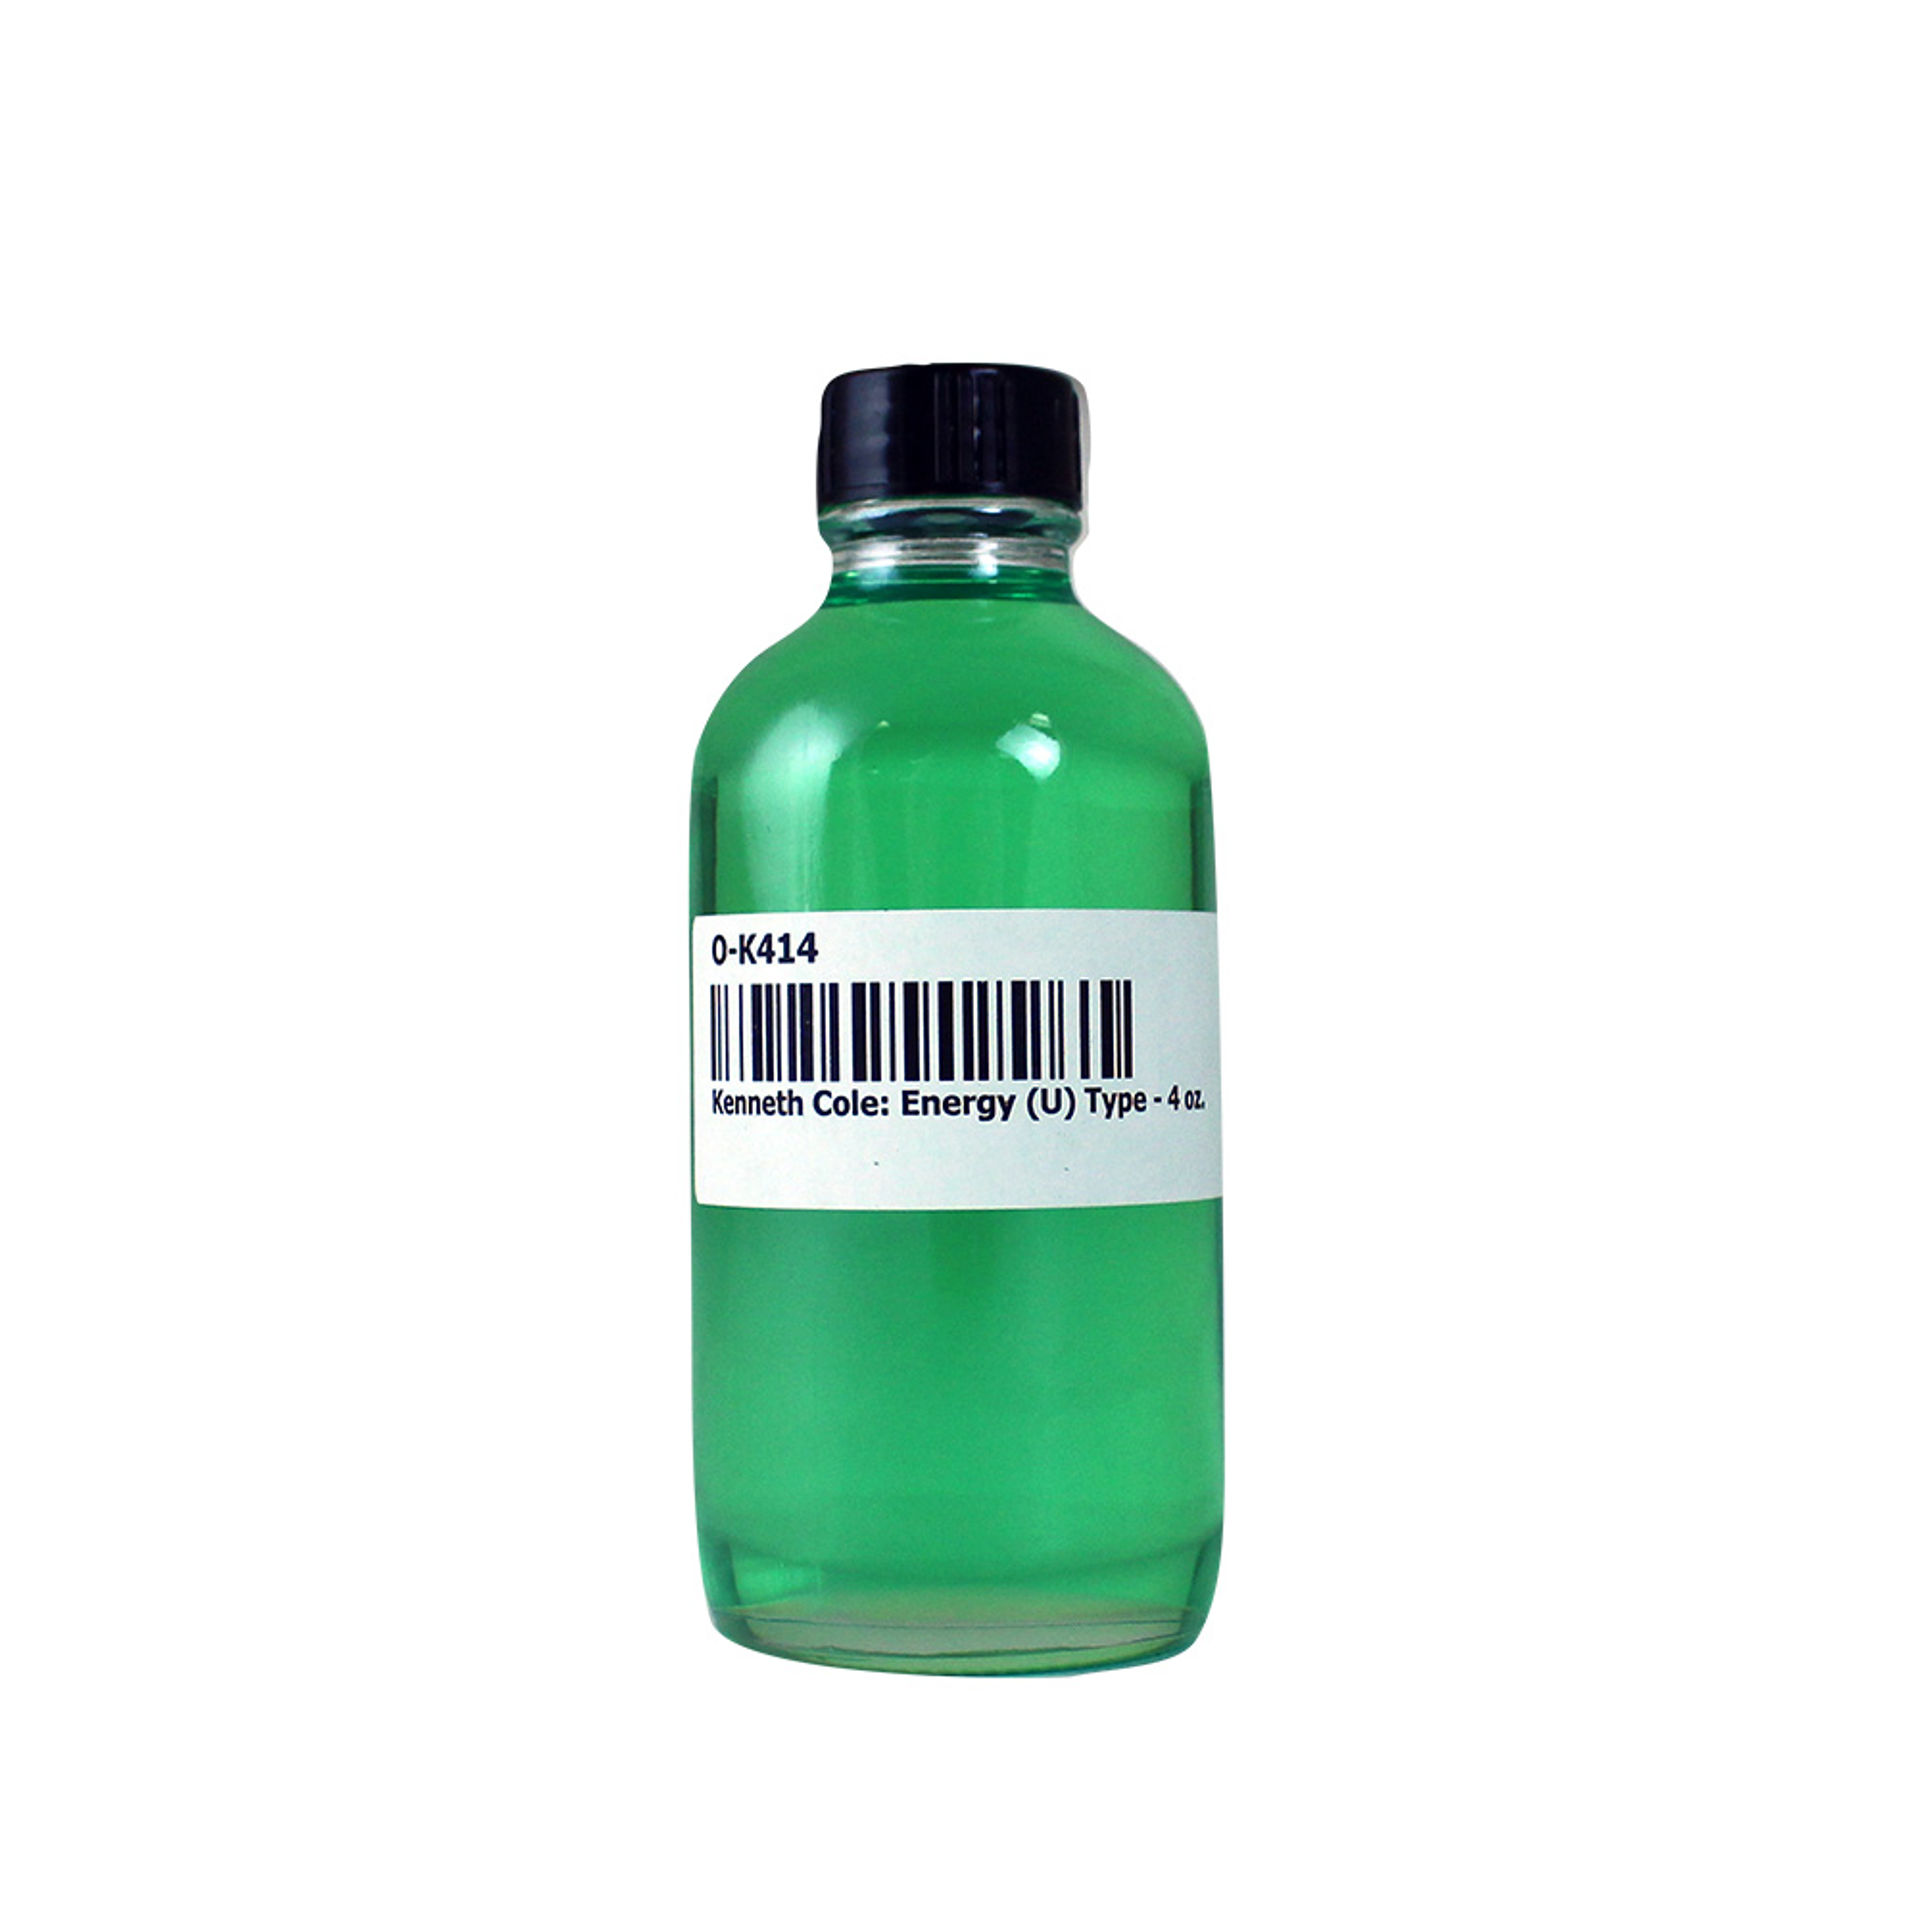 Picture of Kenneth Cole: Energy (U) Type - 4 oz.